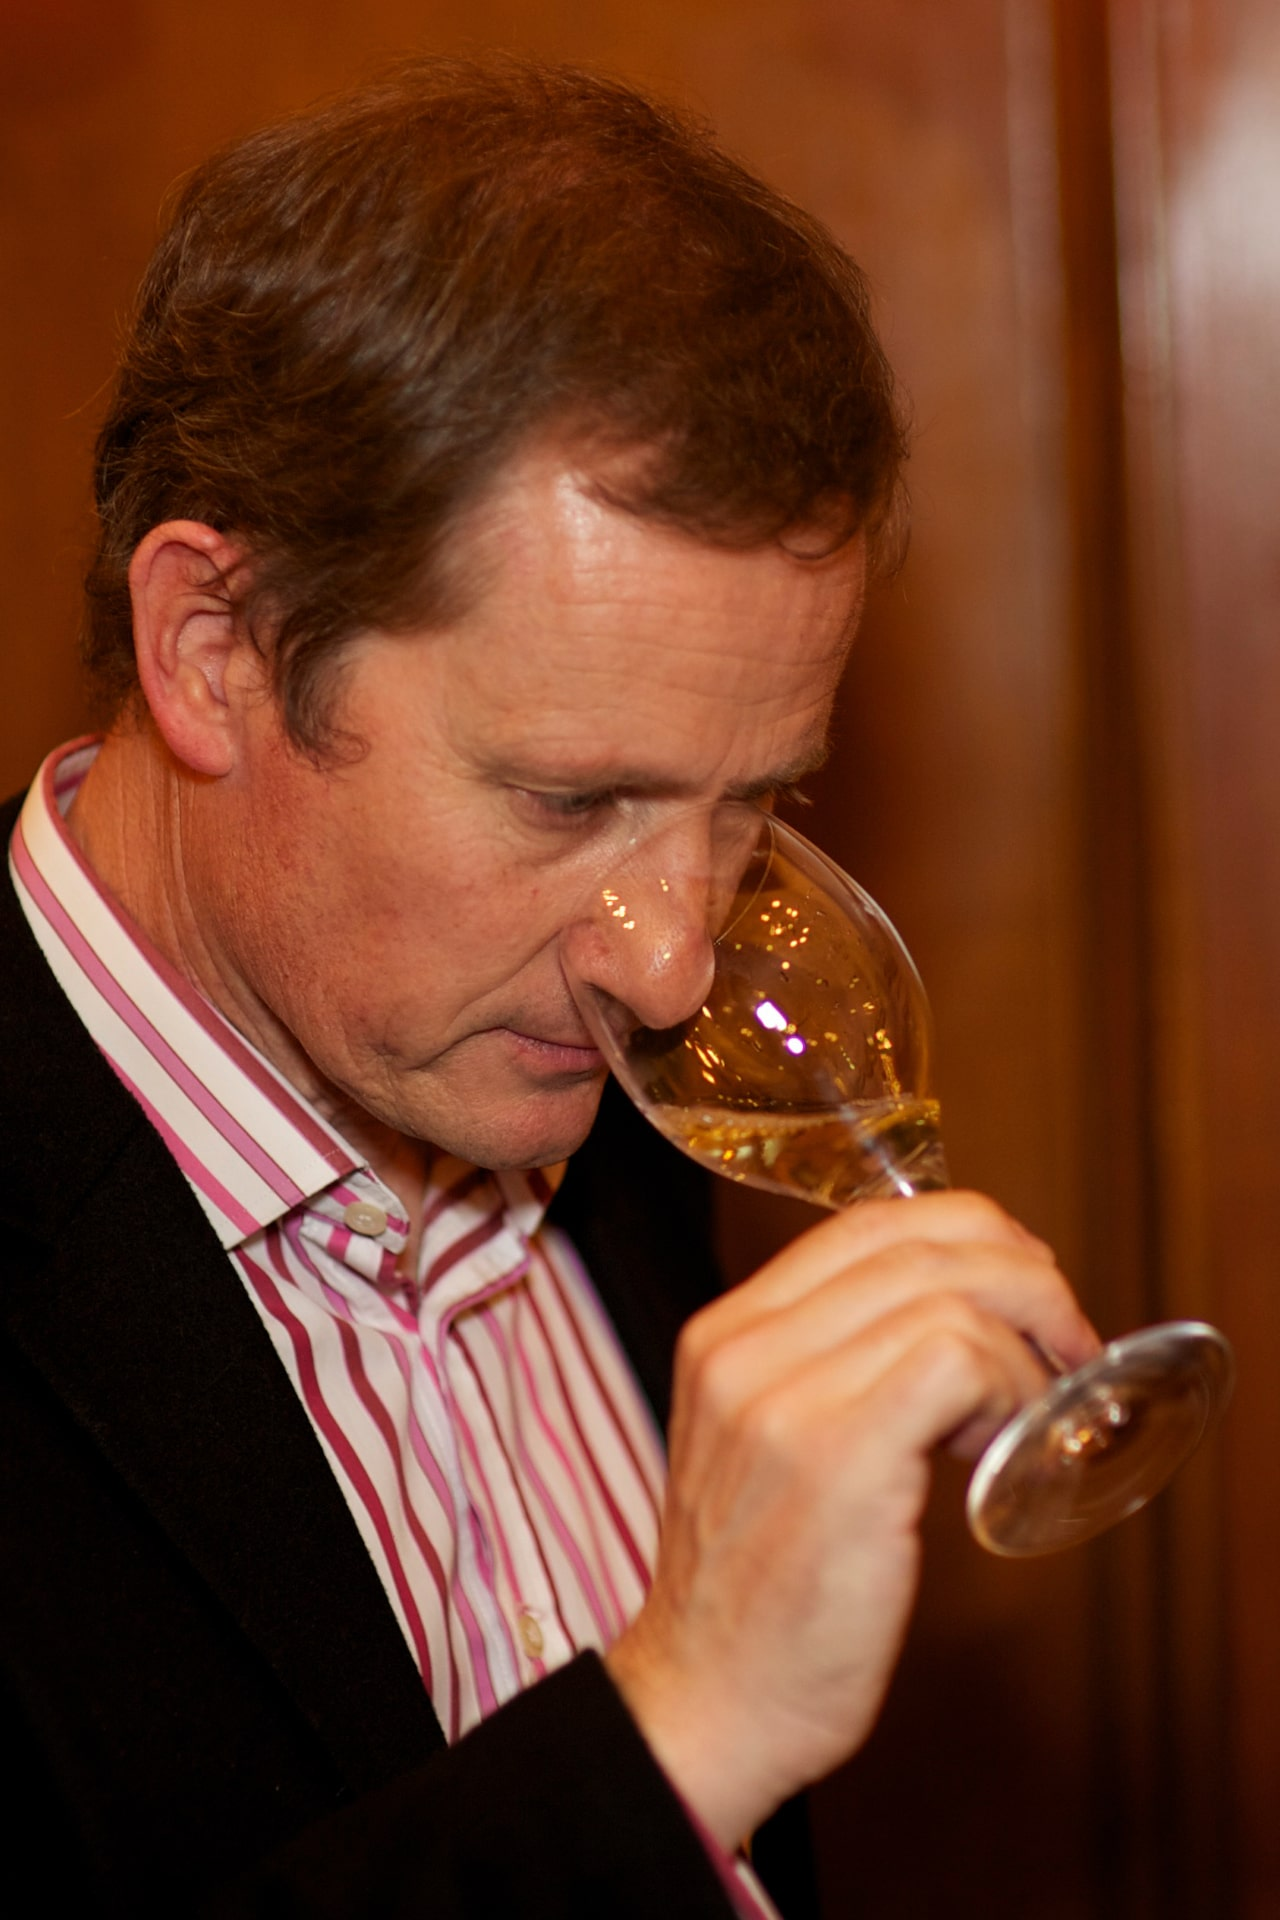 Matthew Stubbs Master of Wine